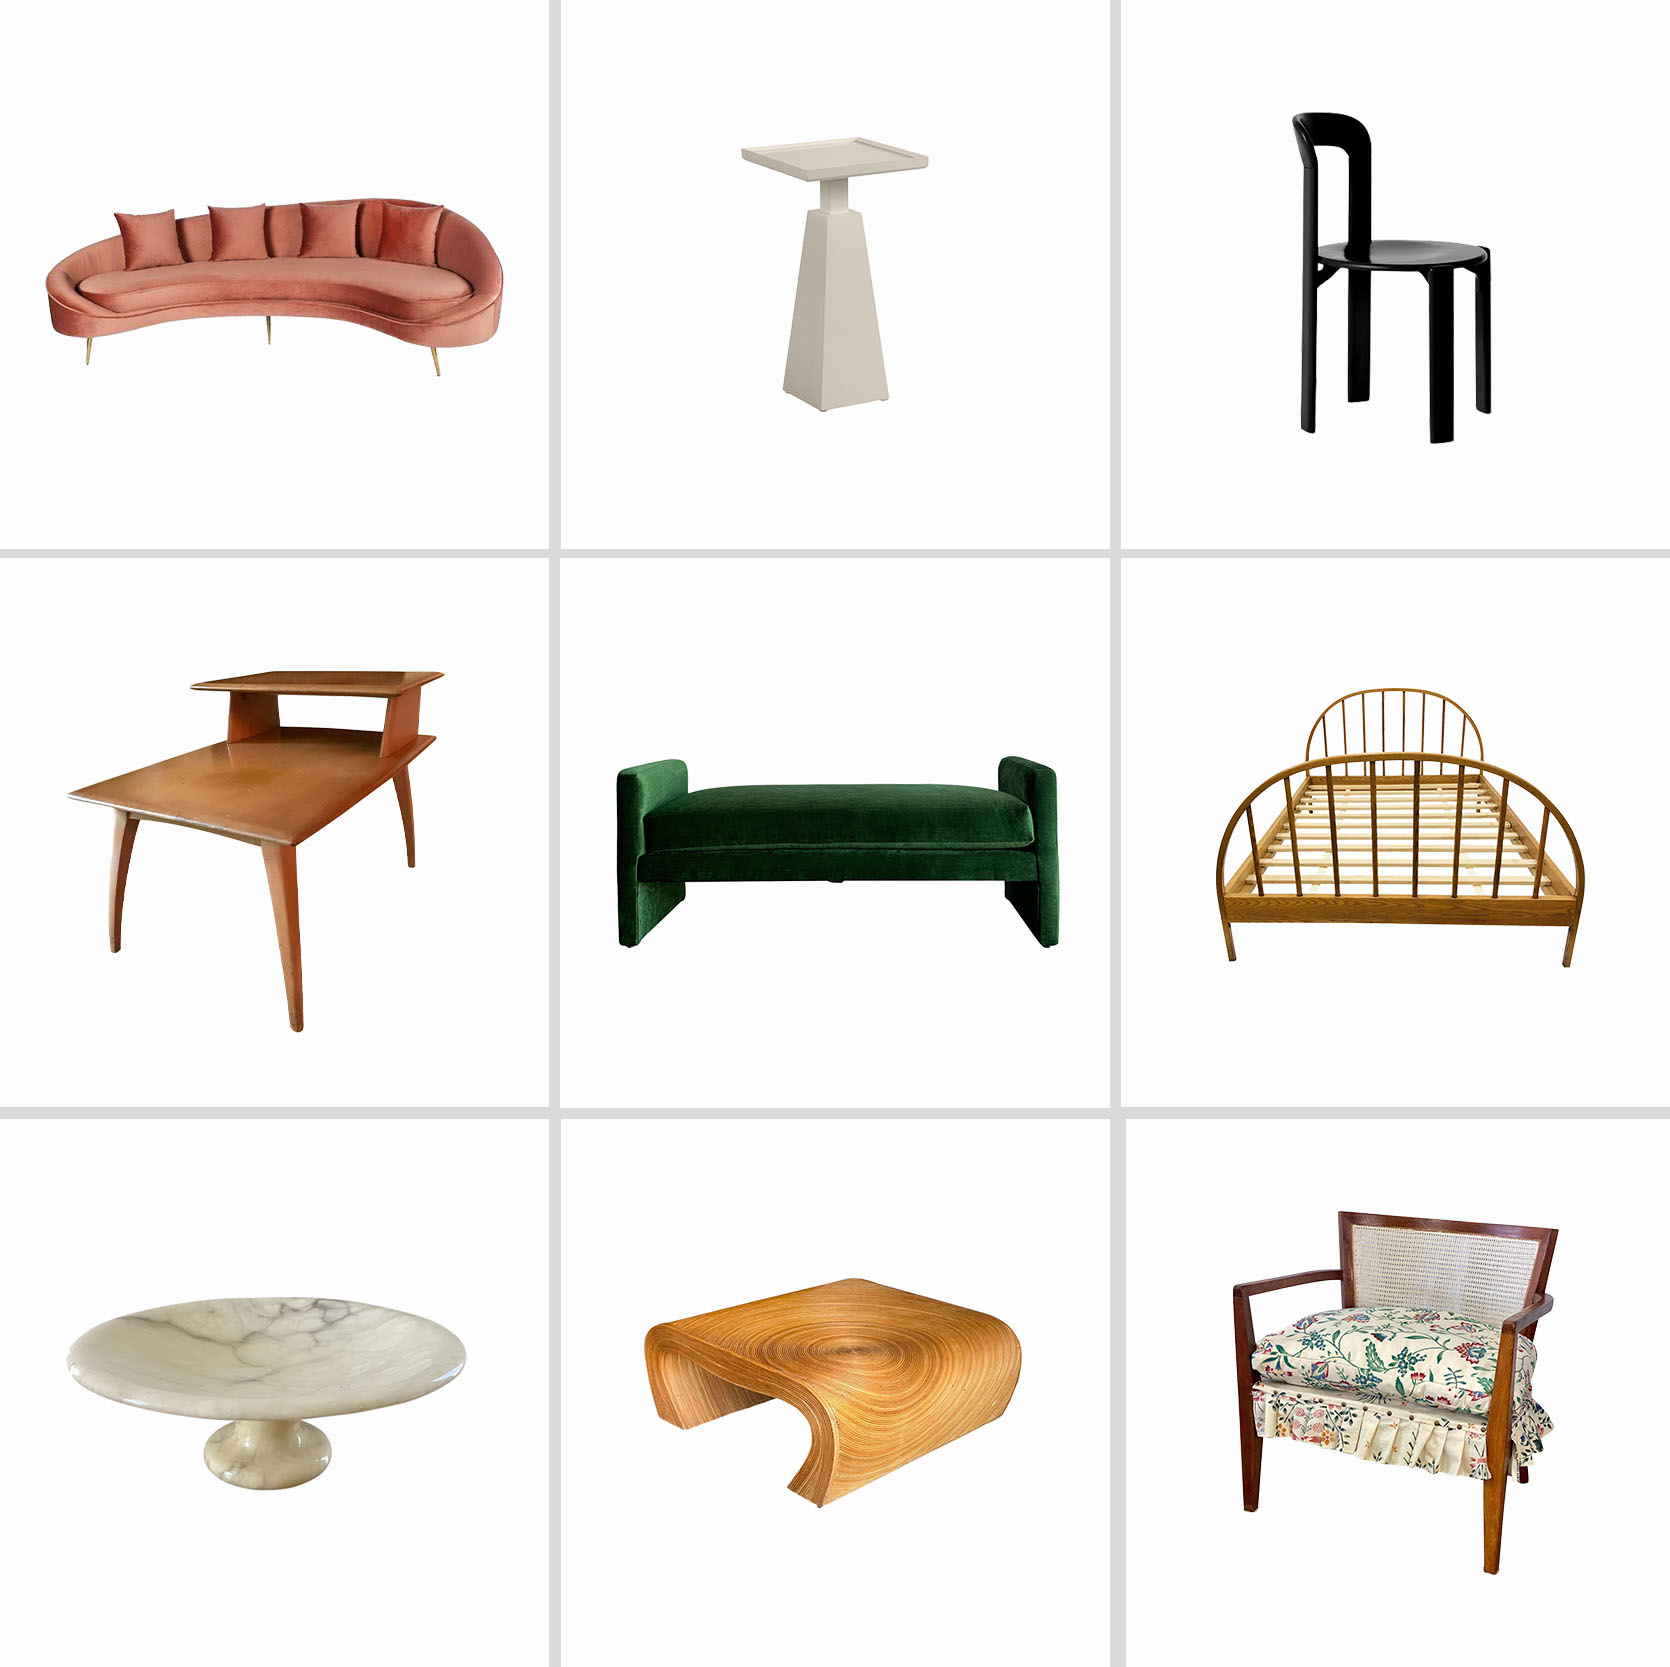 The Most Sustainable & Eco-Friendly Places You Can Shop For Furniture Right Now Best Children's Lighting & Home Decor Online Store